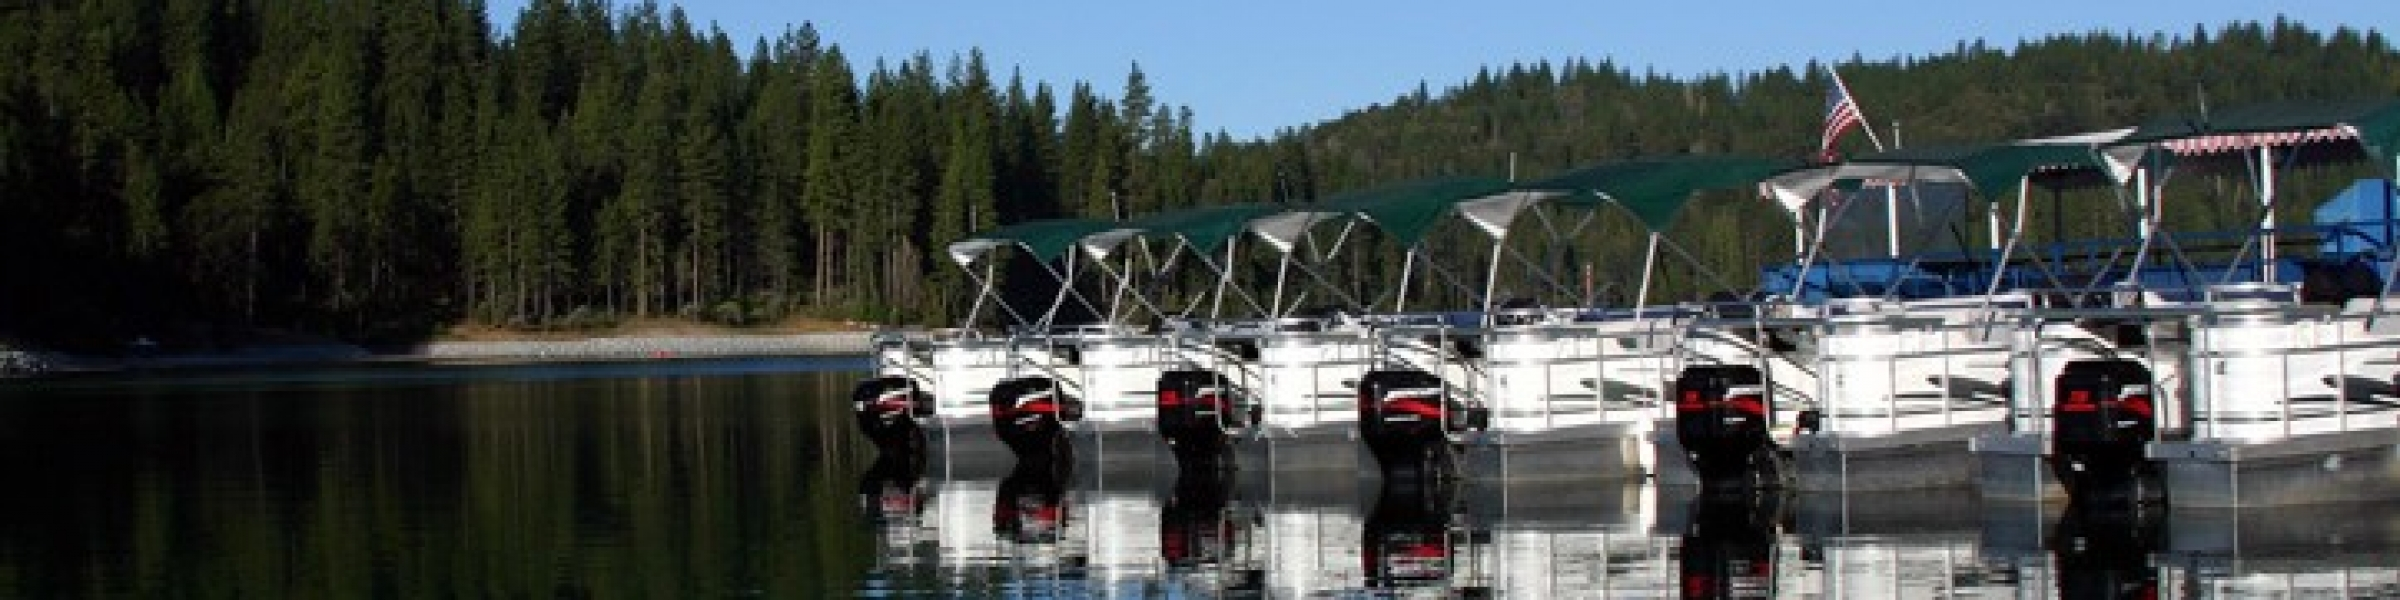 bass-lake-boat-rentals-slideshow-005